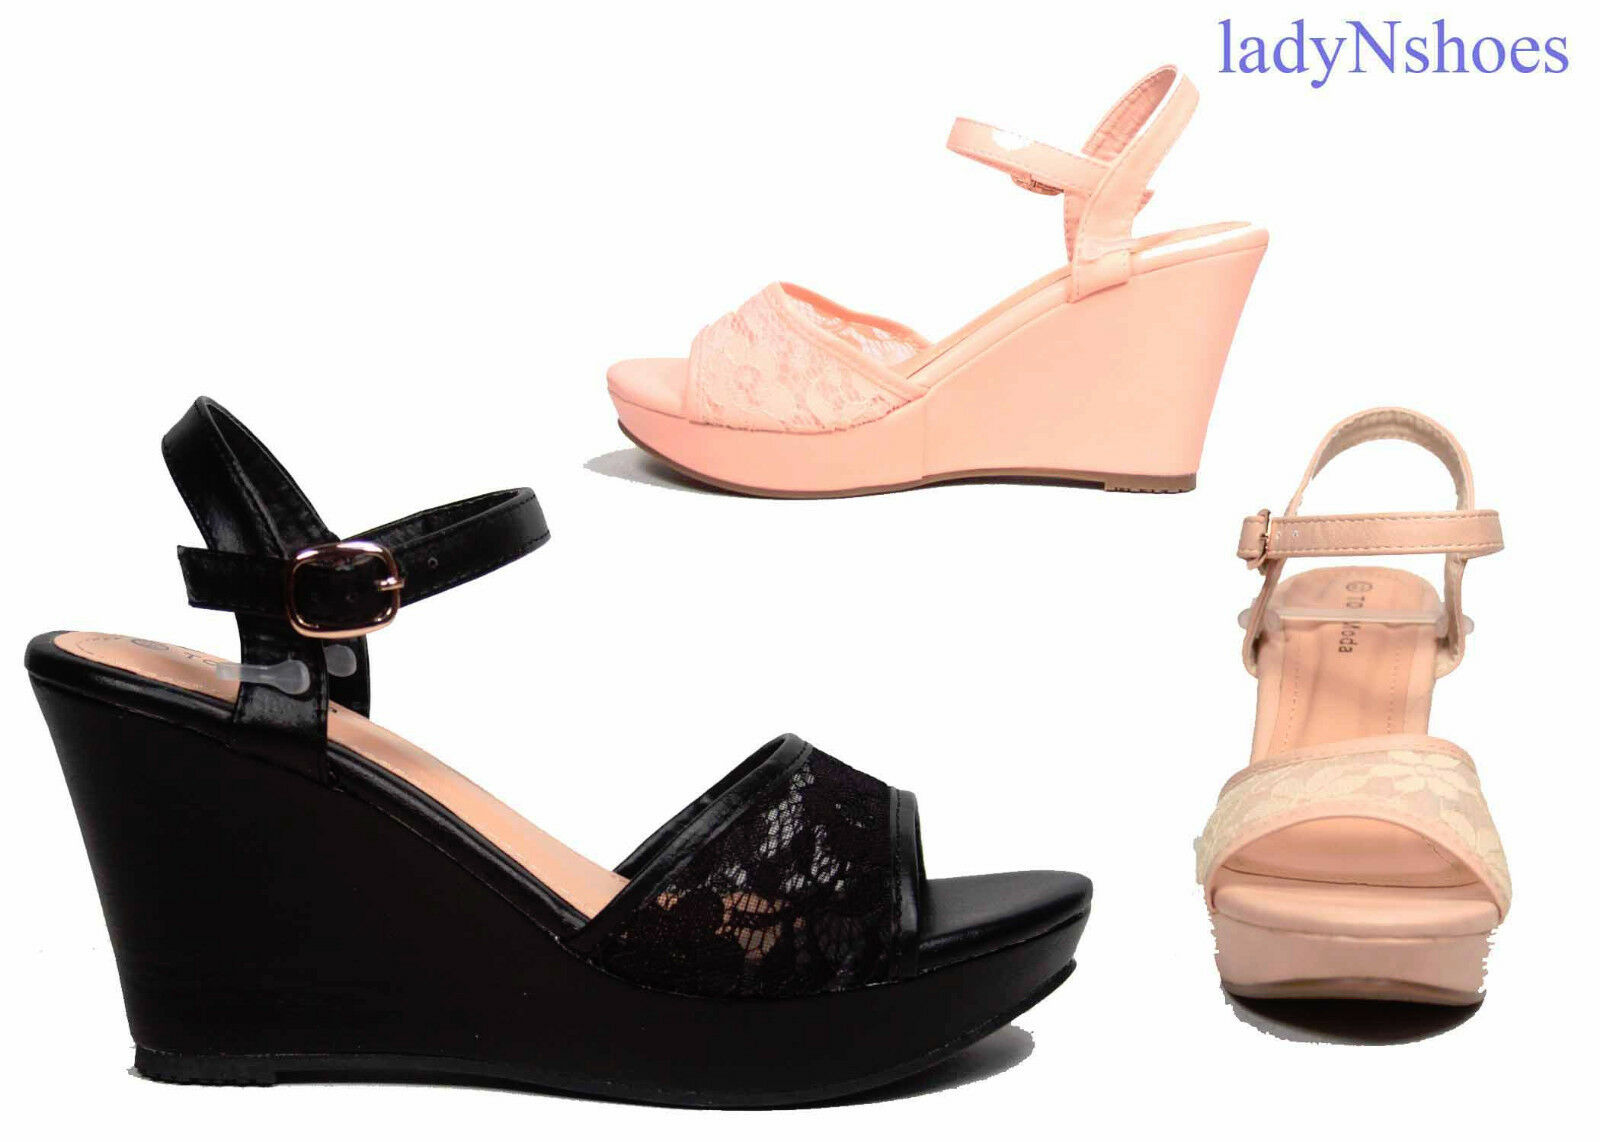 NEW Open Toe Buckle  Wedge Sandal Heel Platform Women's  Sandal Wedge Shoes Size 5.5 - 11 d85af4